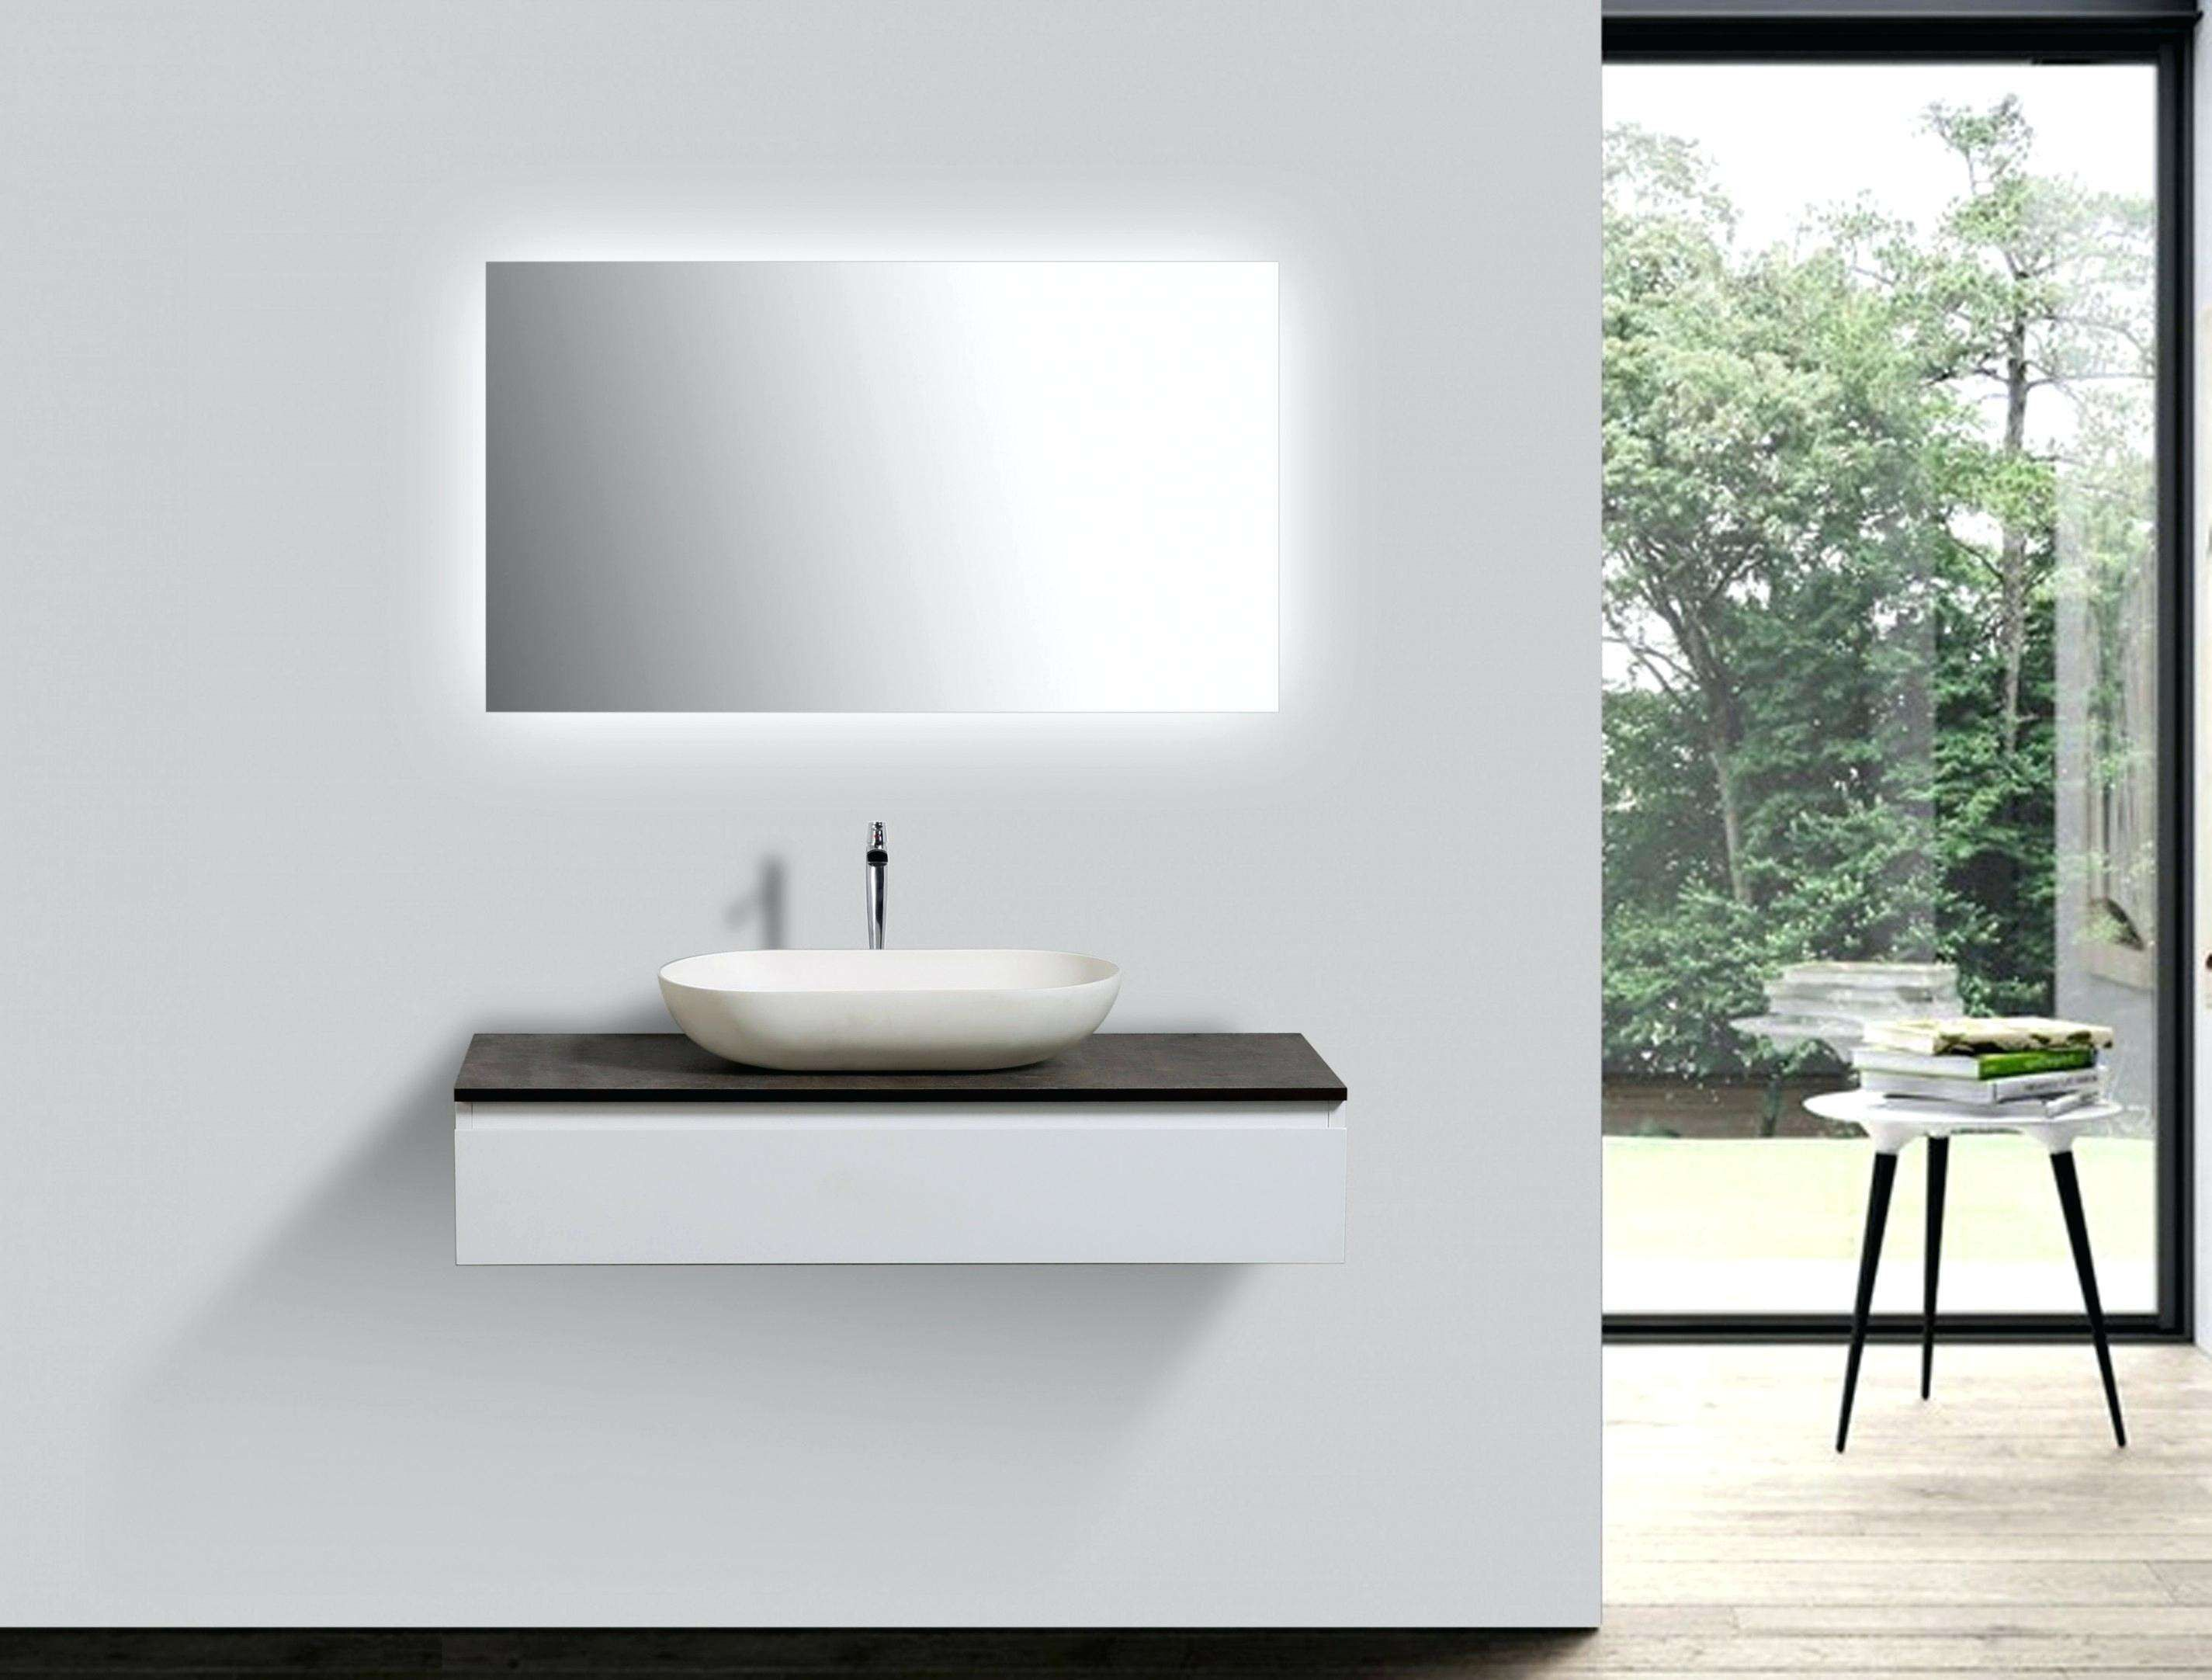 Ikea Küchen Katalog Pdf Inspirational Luxus Ikea Küchen Katalog Pdf Bathroom Mirror Lighted Bathroom Mirror Bathroom